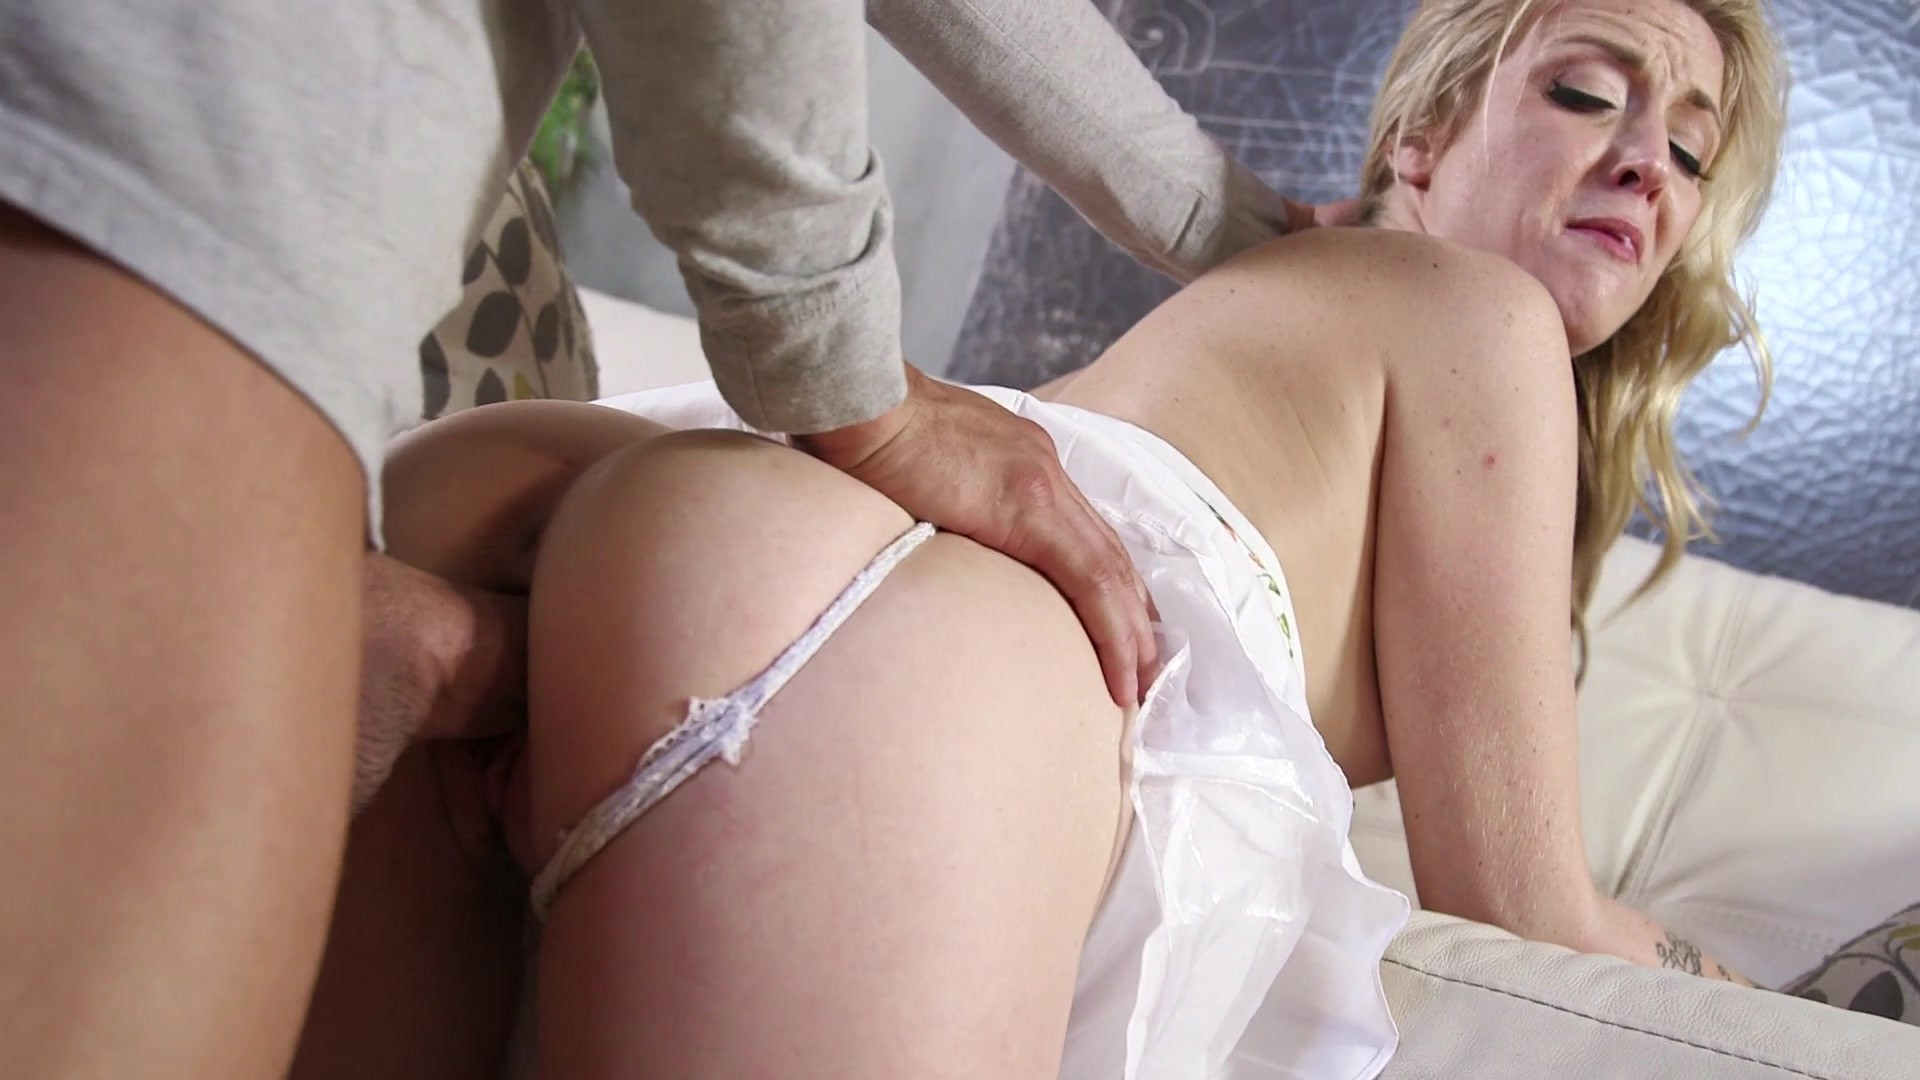 Does sara jay do anal